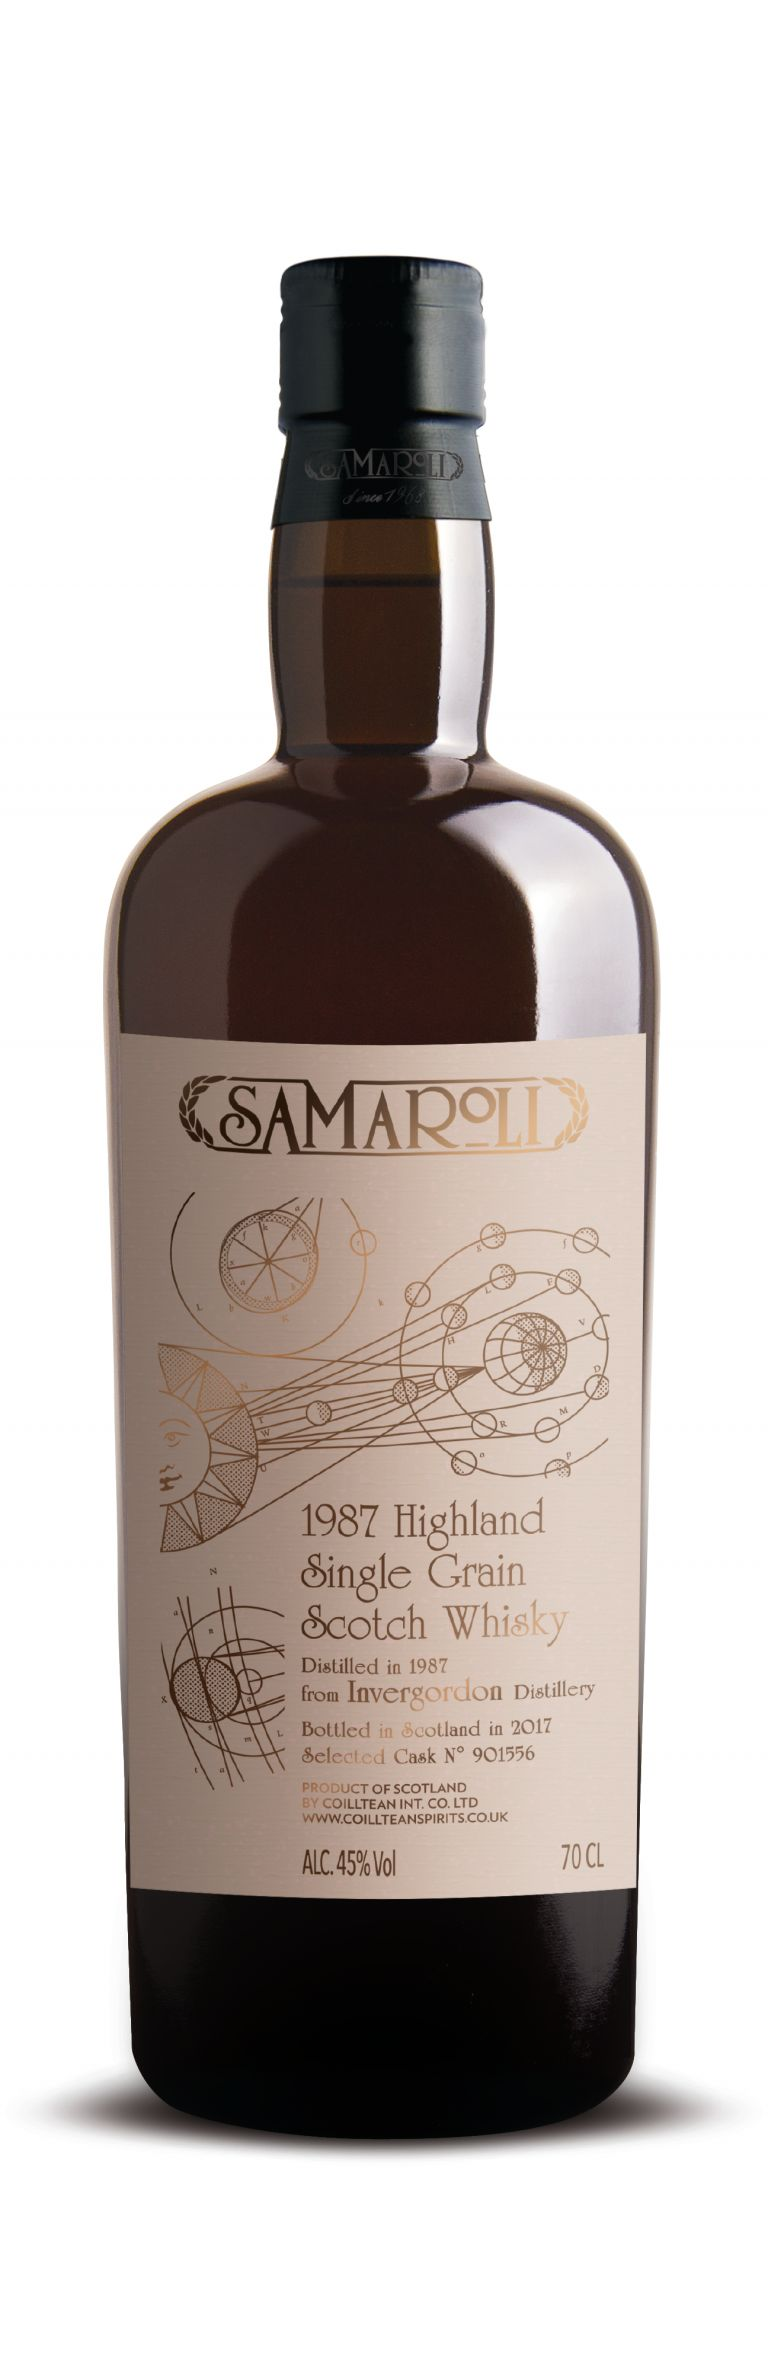 1987 Invergordon - Highland Single Grain Scotch Whisky - ed. 2017 - 70 cl